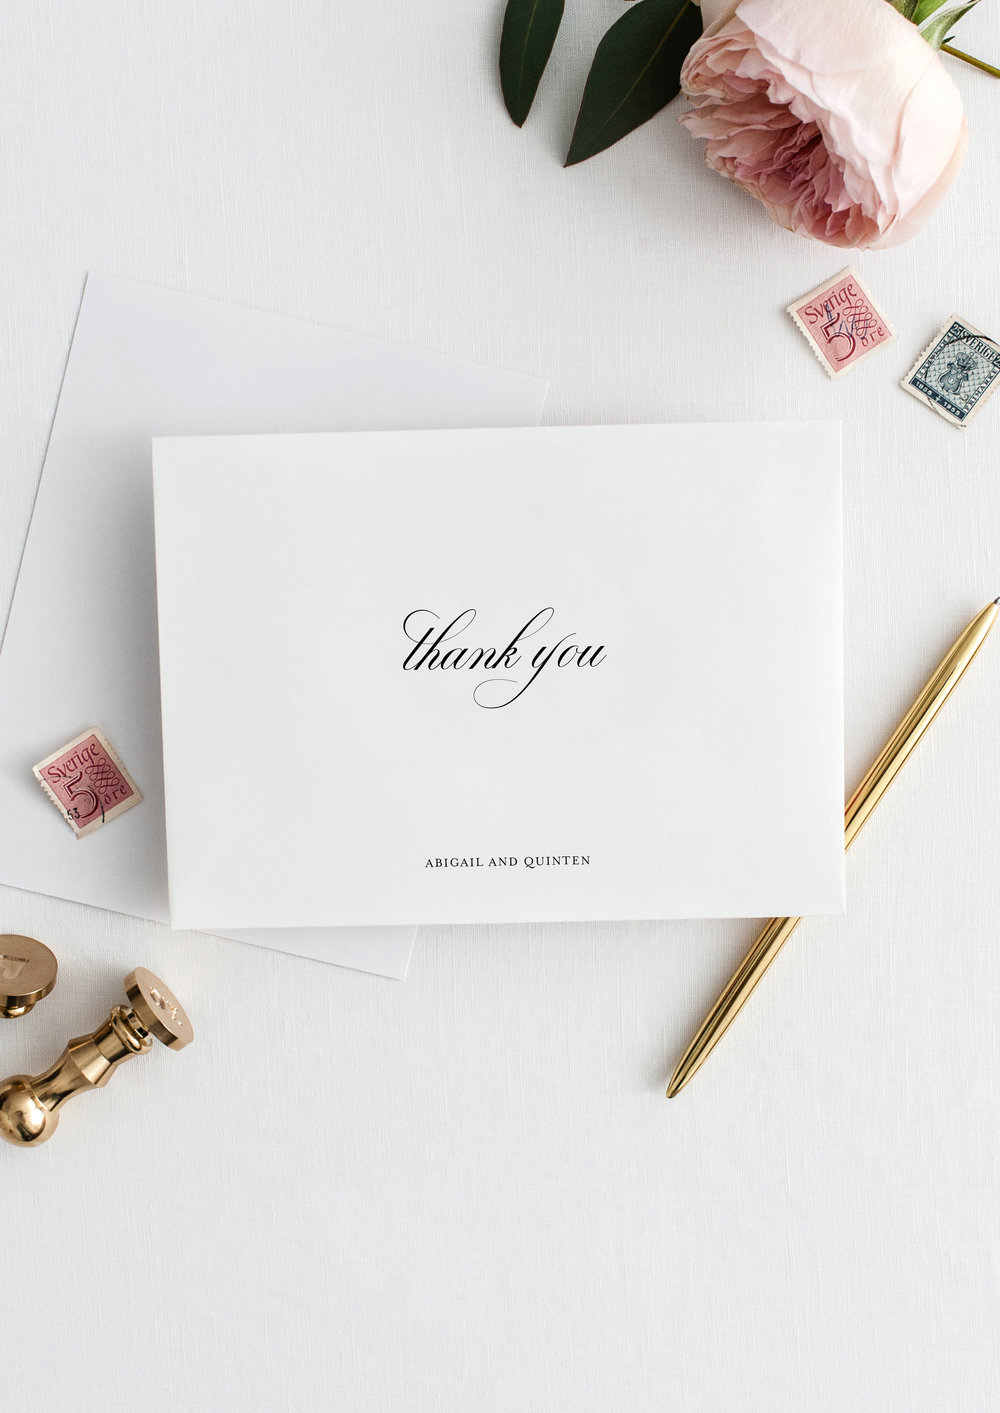 abigail and quinten timeless elegant wedding thank you card